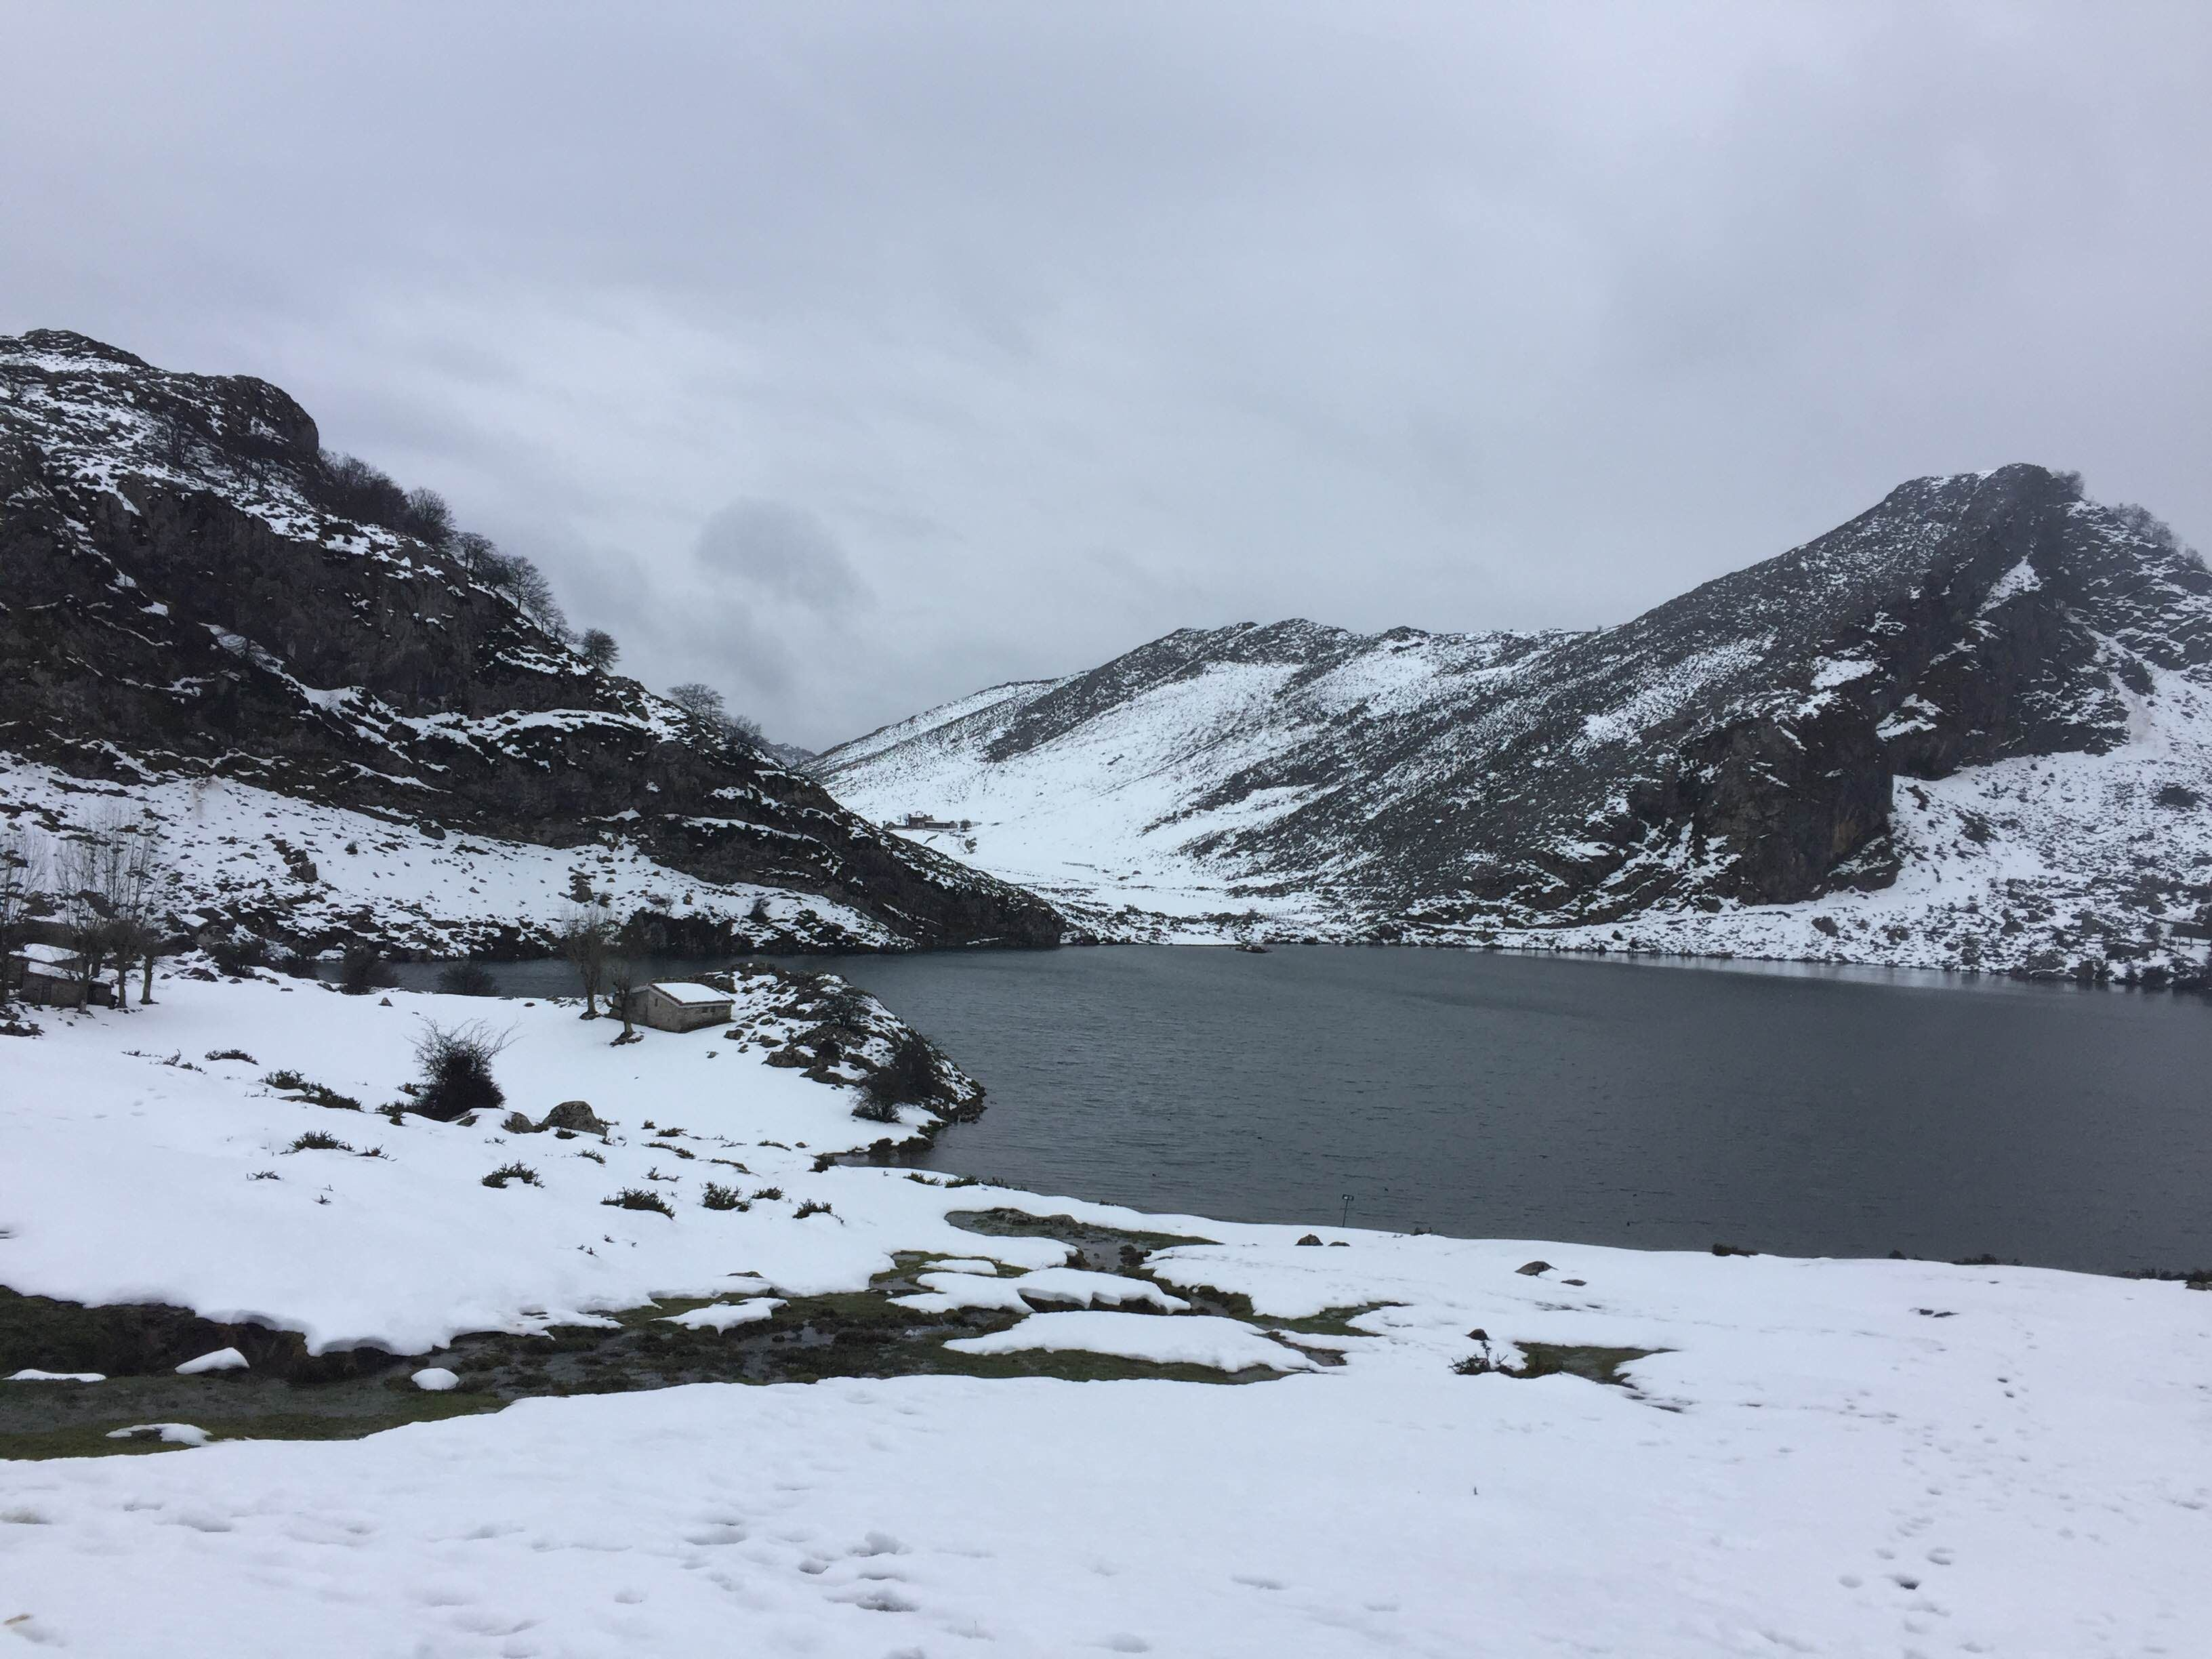 Snow in The Lakes of Covadonga - Enol and Ercina lakes